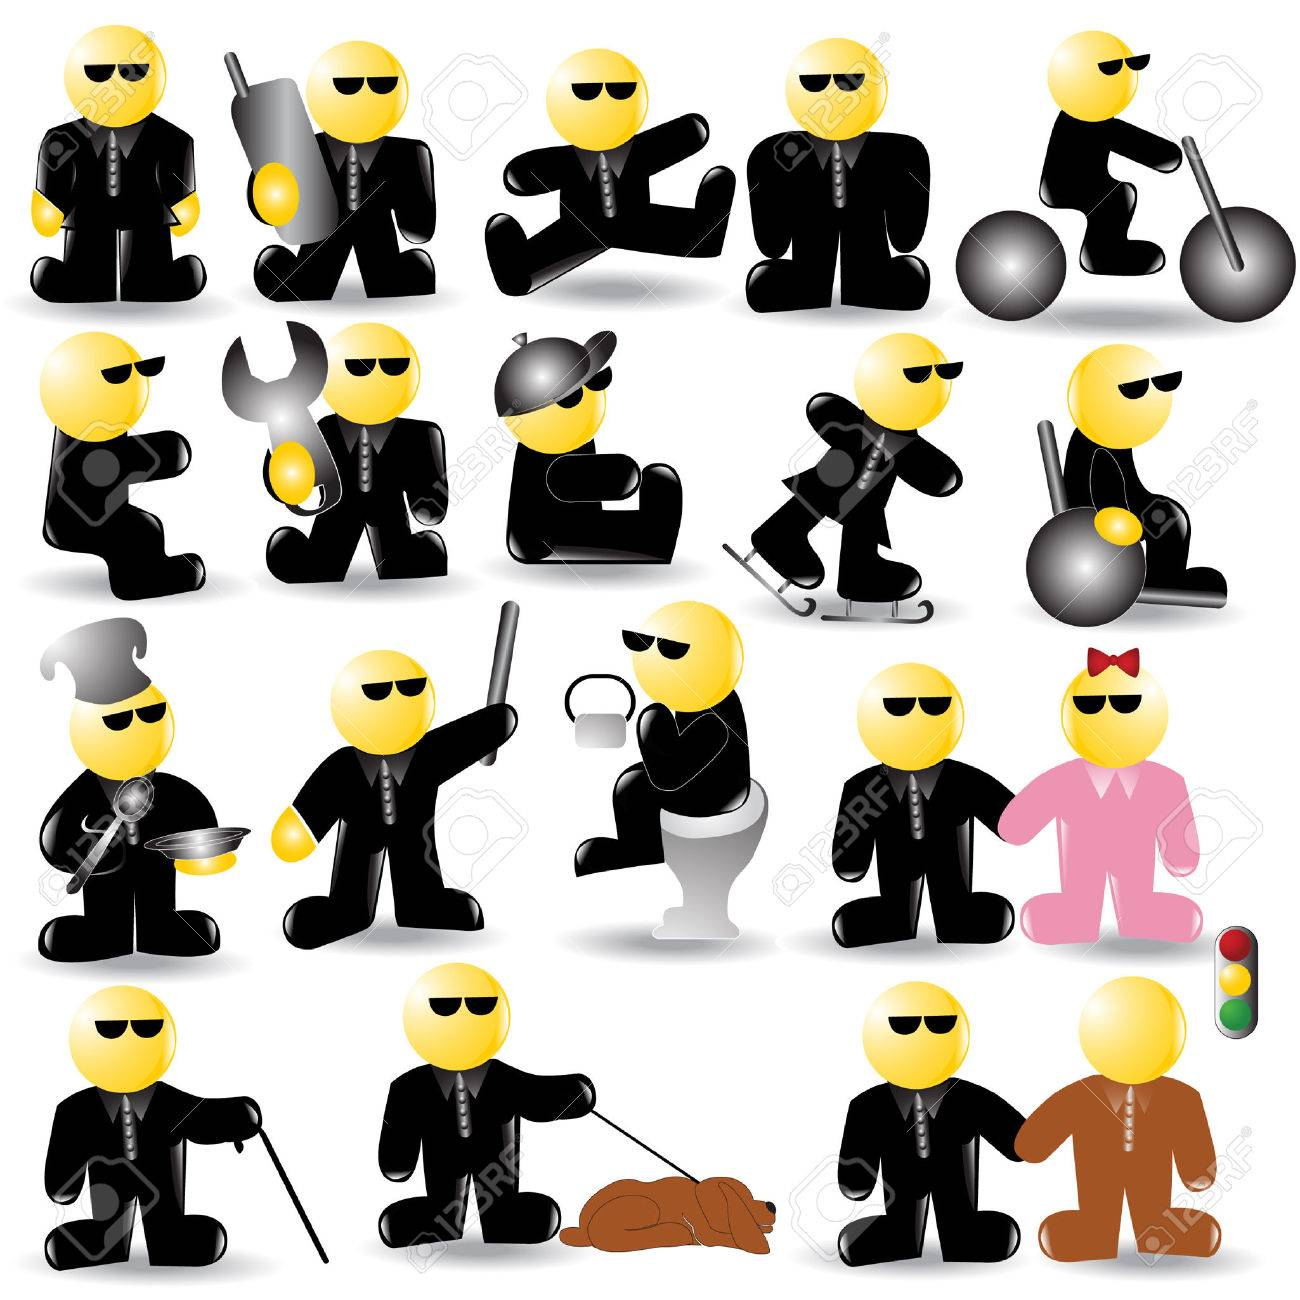 there are blind or businessman  icon character Stock Vector - 7179020